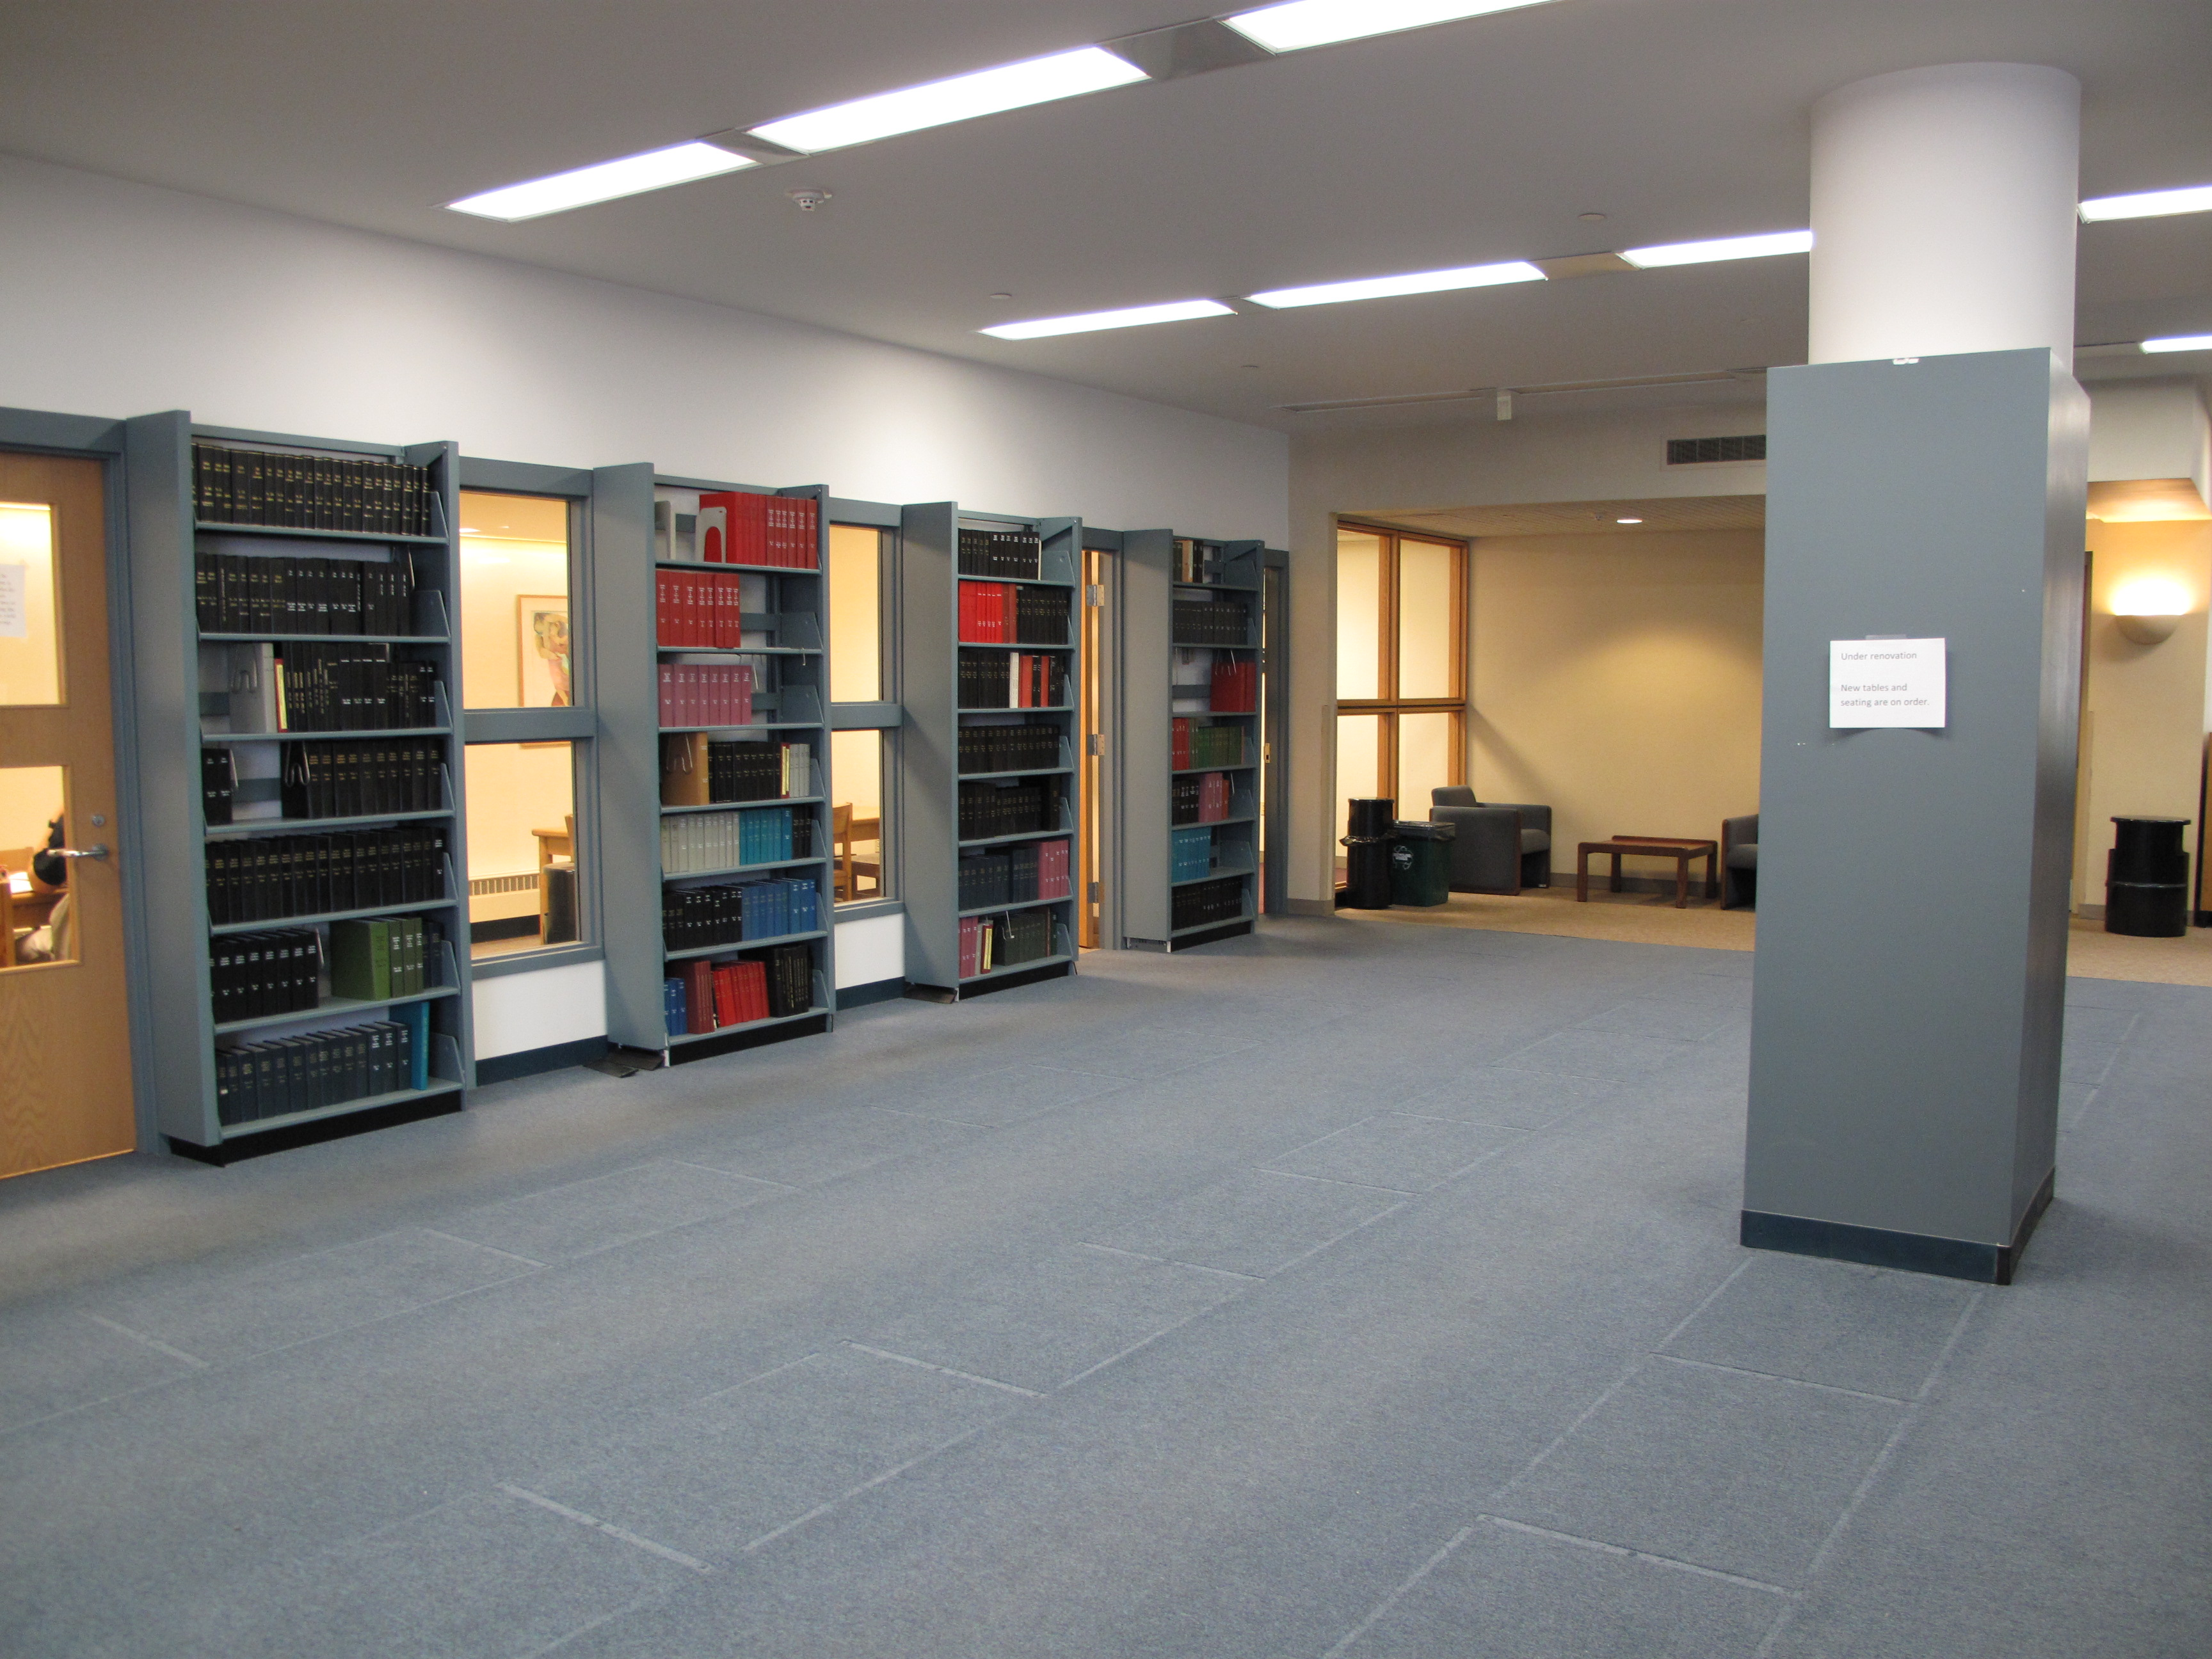 1st floor pre-renovation (3409733198).jpg Our library staff moved some of our lesser-used print periodicals to the basement to clear out more